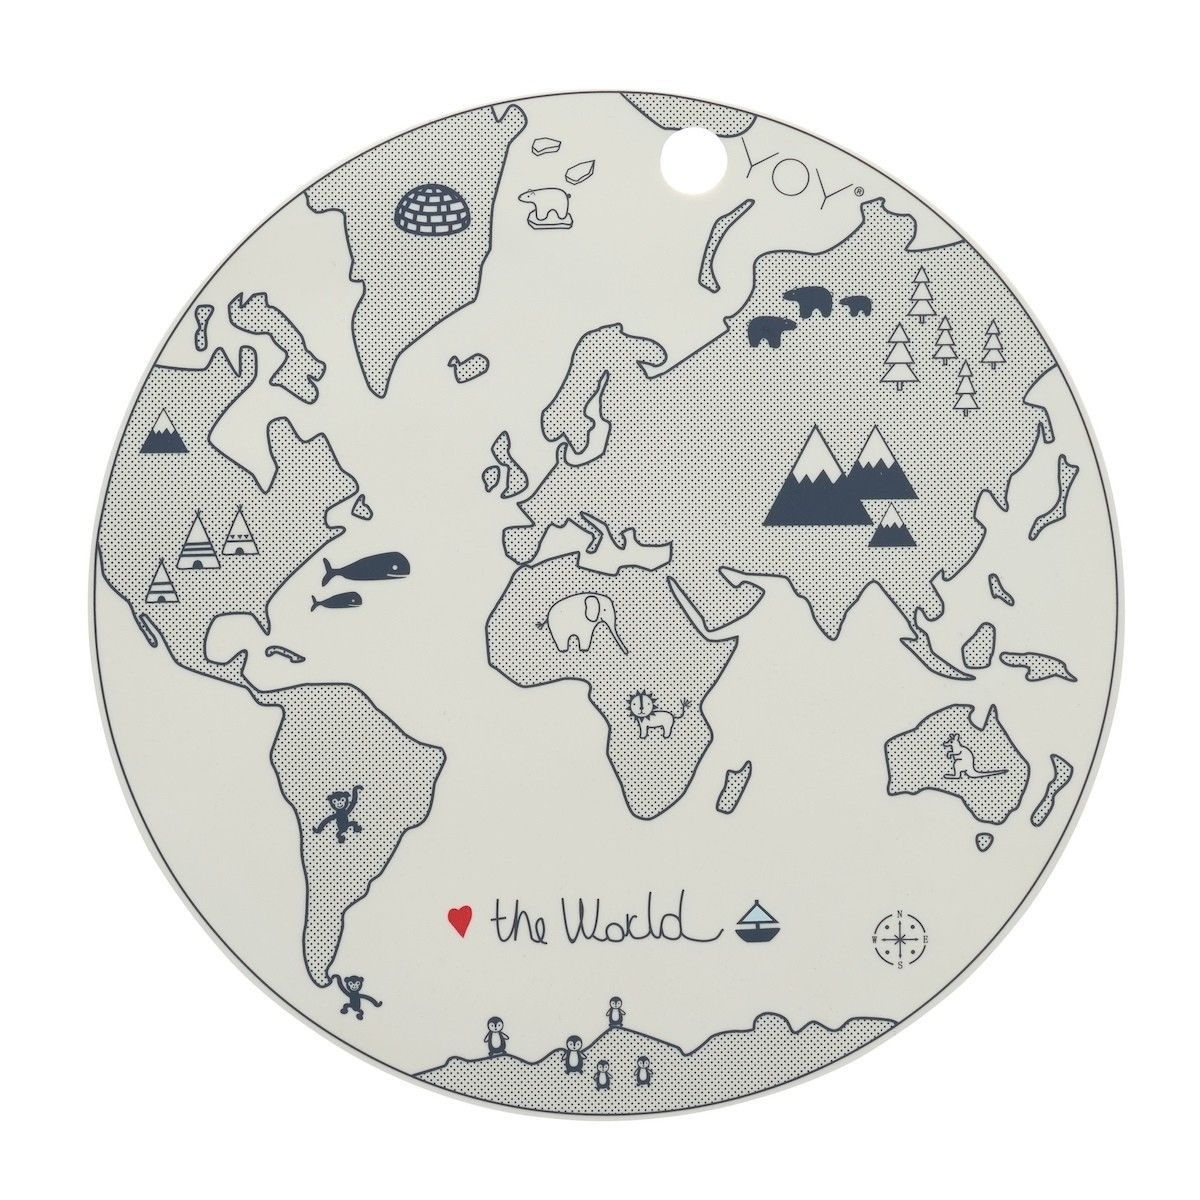 OYOY - Placemate The World - 1